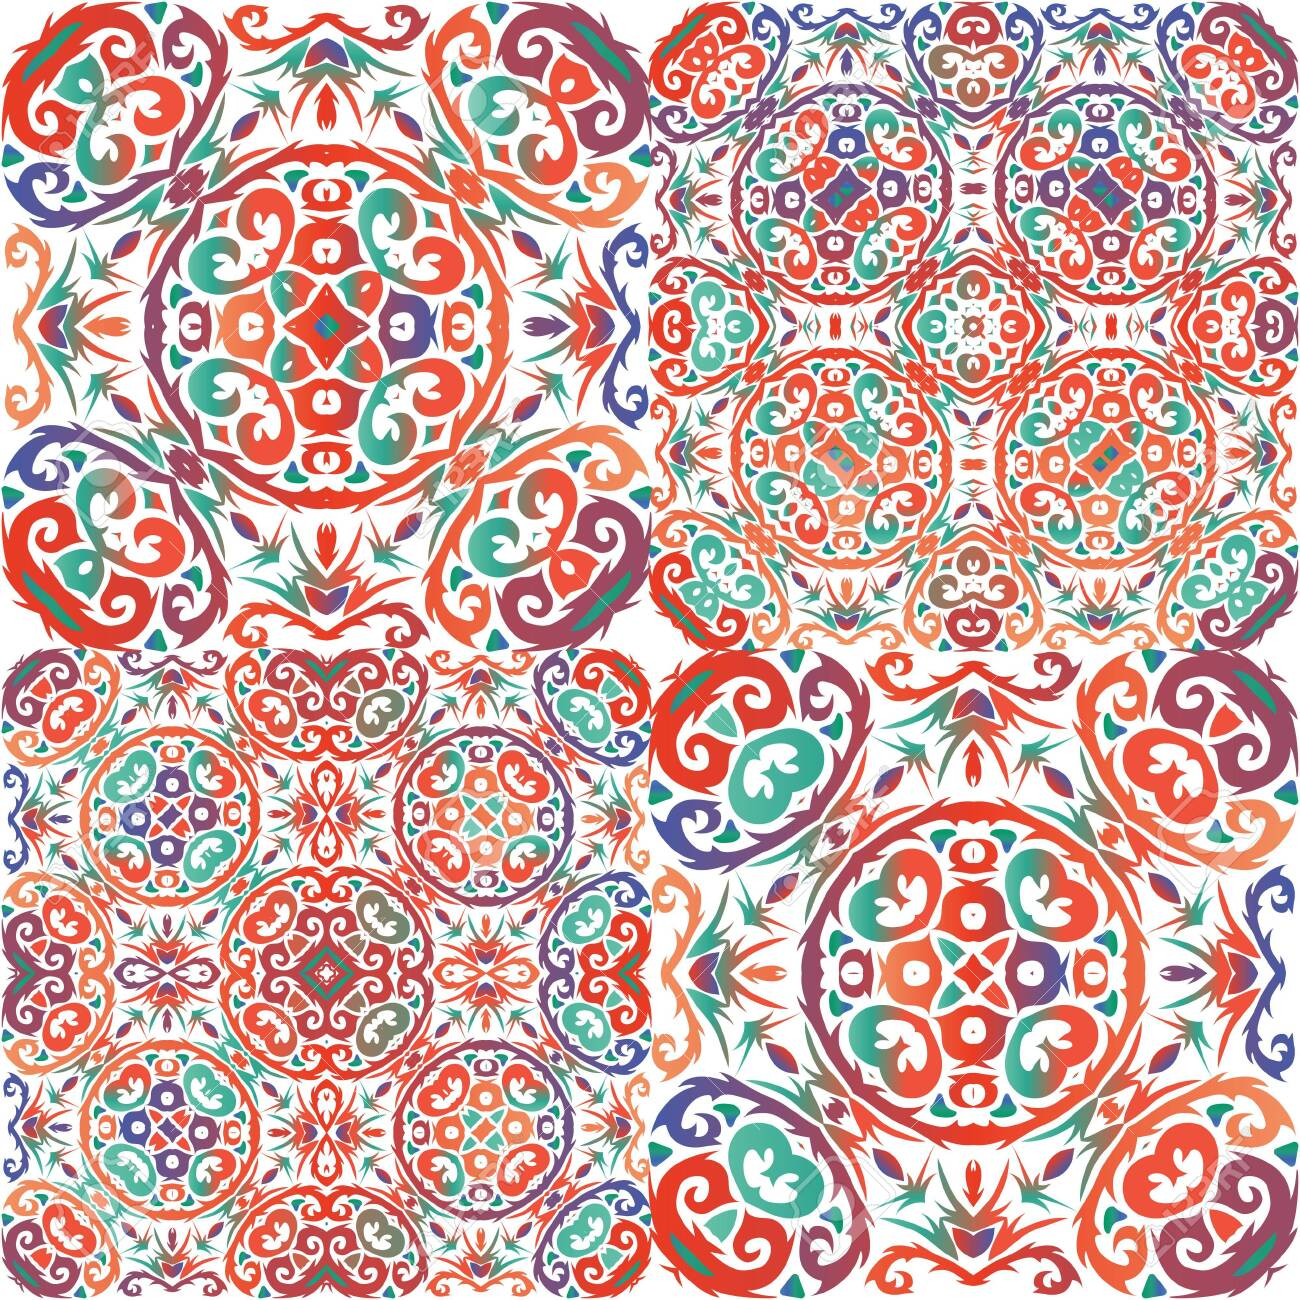 Antique talavera tiles patchworks. Set of vector seamless patterns. Original design. Red mexican ornamental decor for bags, smartphone cases, T-shirts, linens or scrapbooking. - 146560564